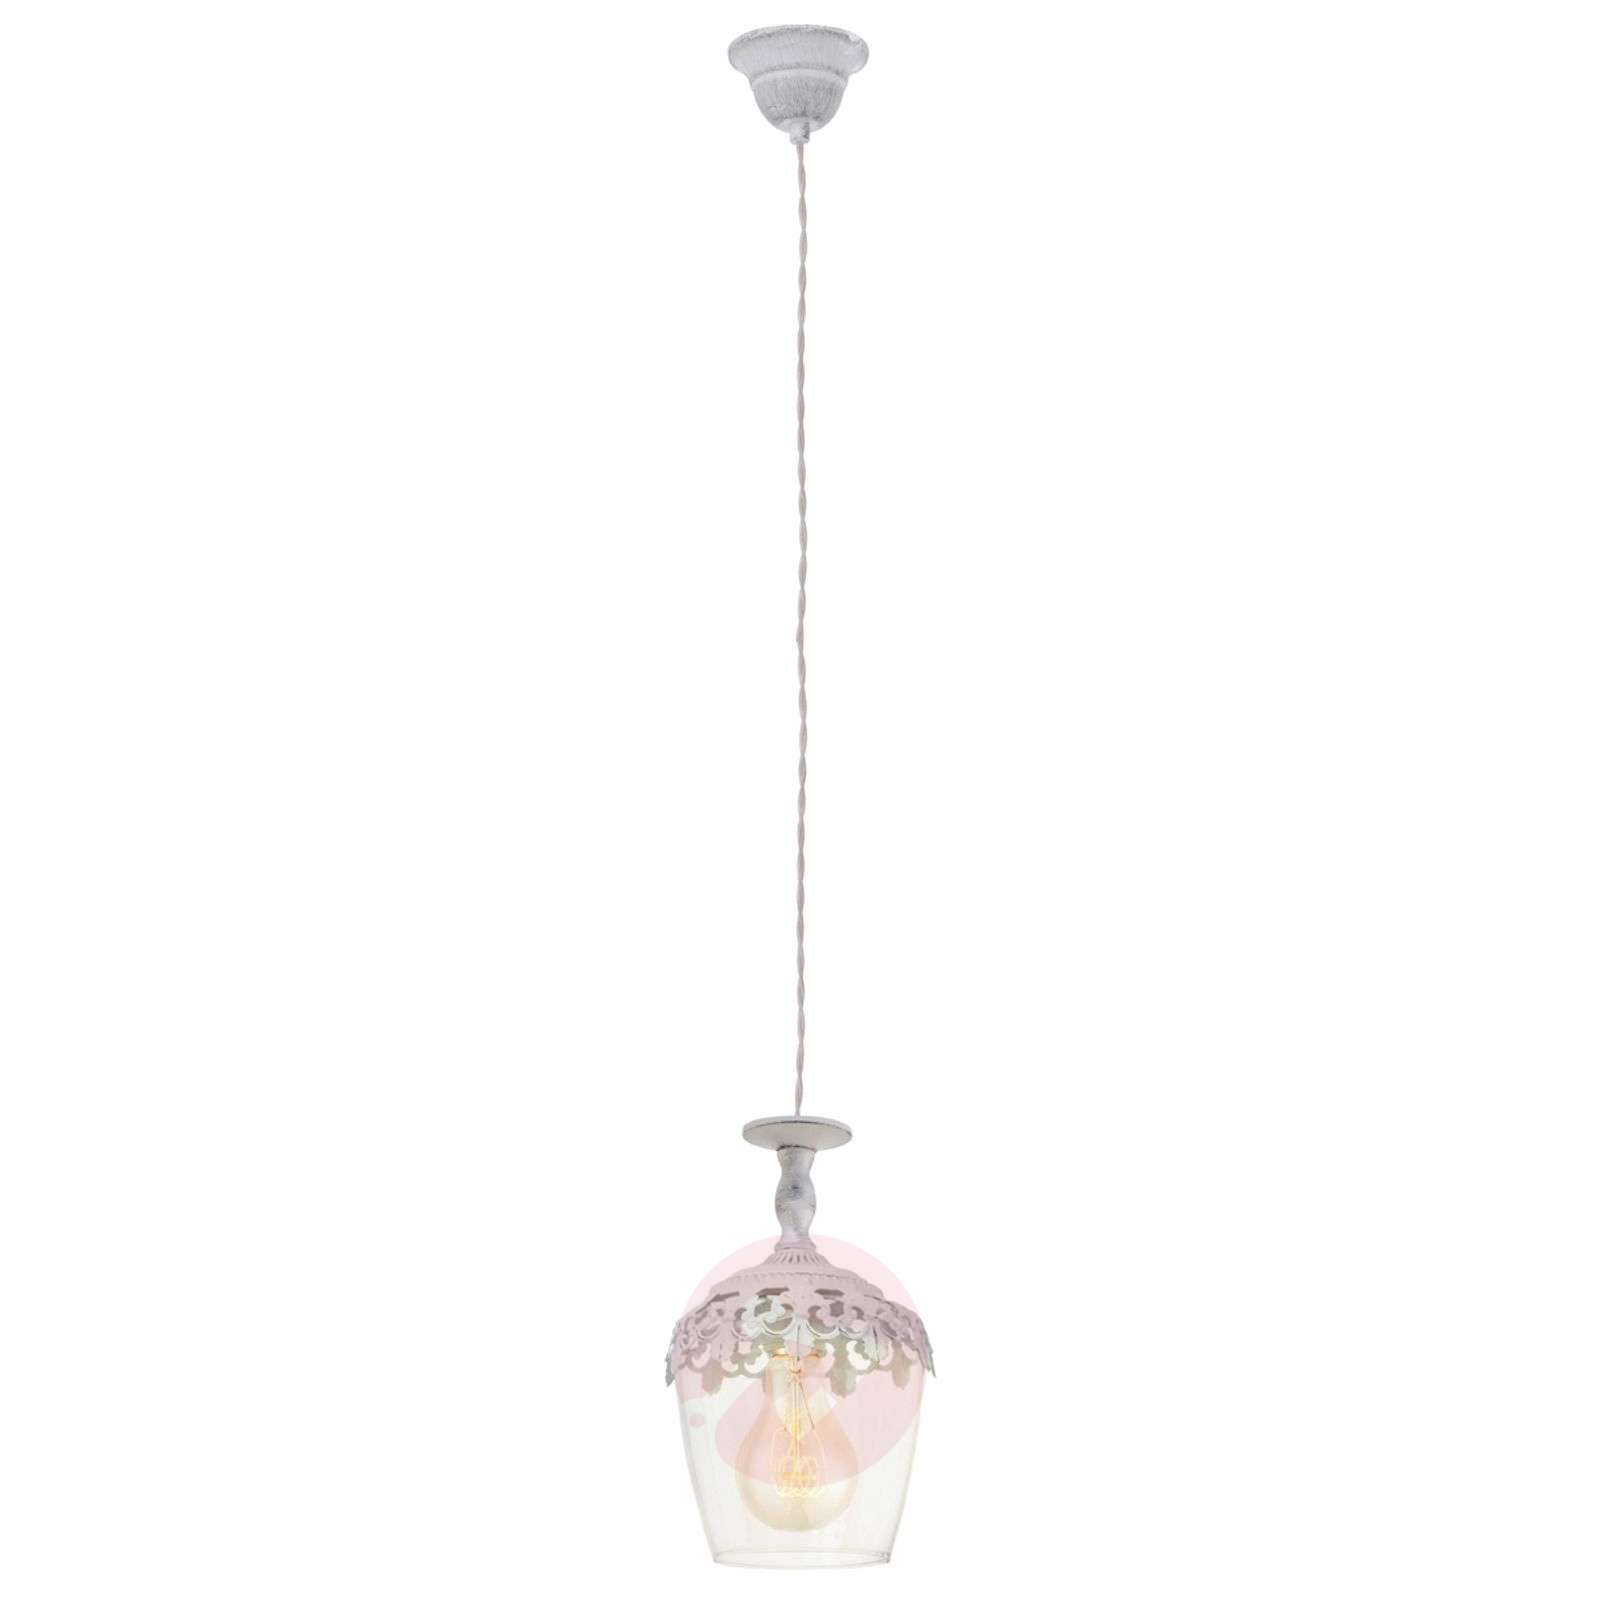 Florinia suspension patinée blanc-3031594-01